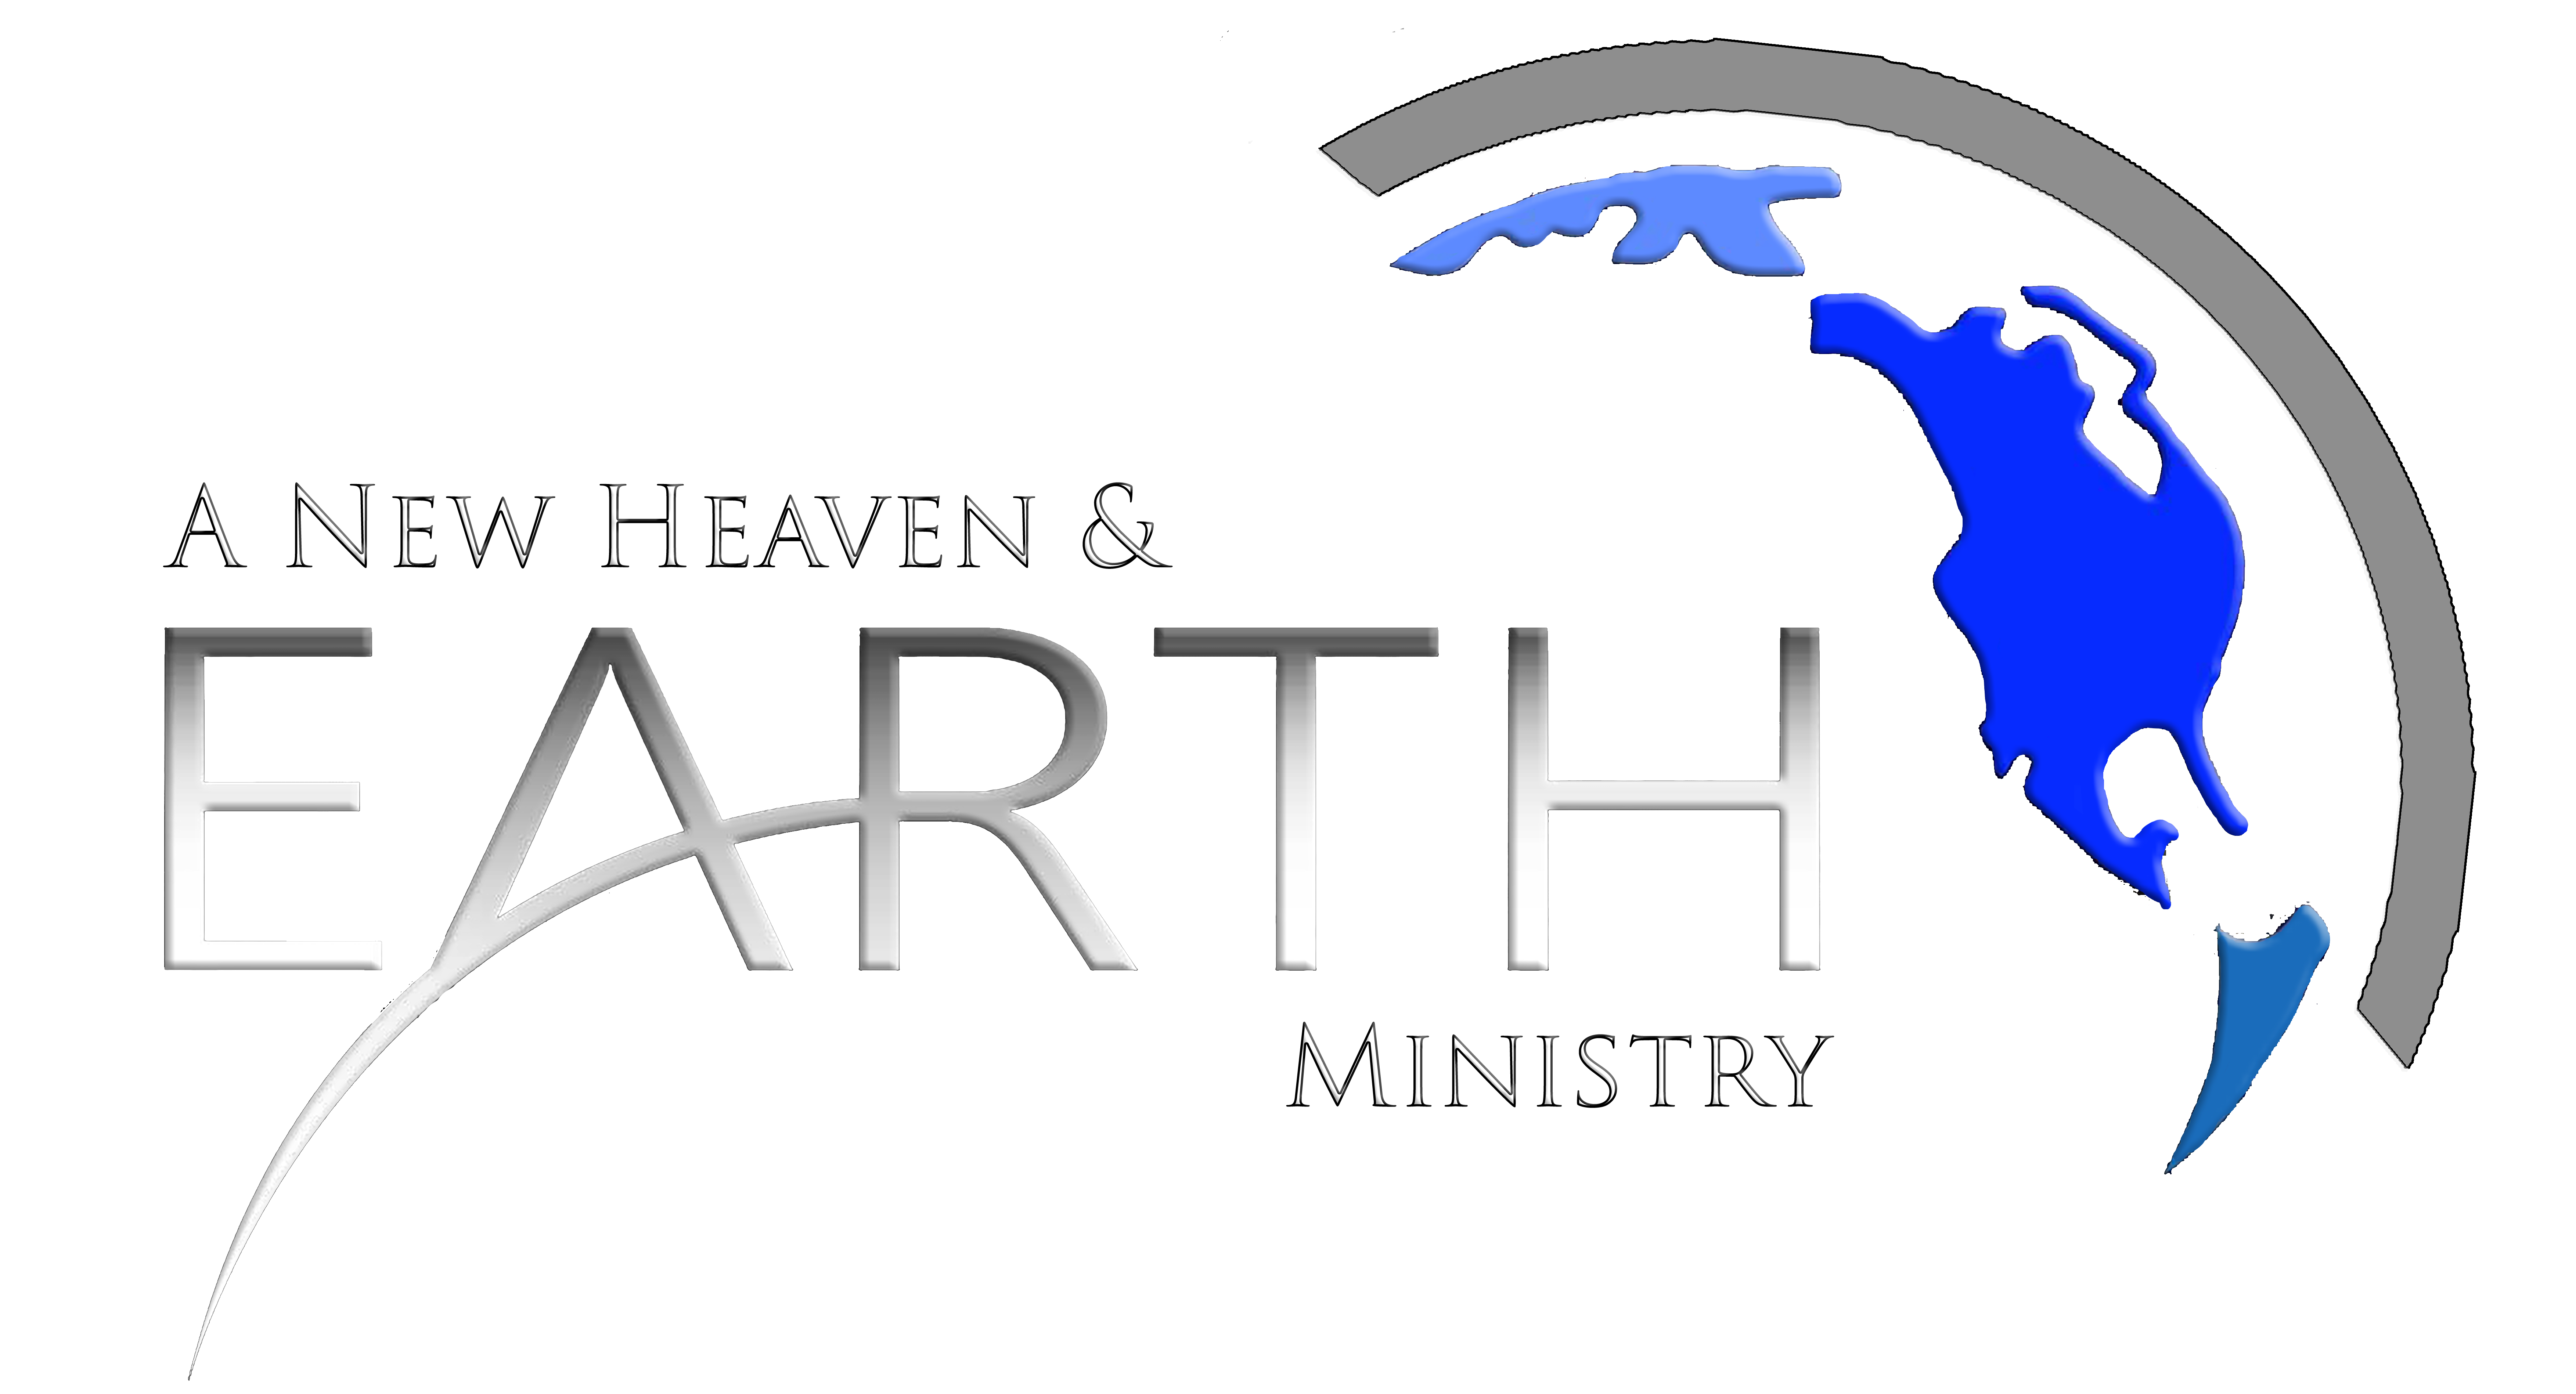 A New Heaven & Earth Ministry